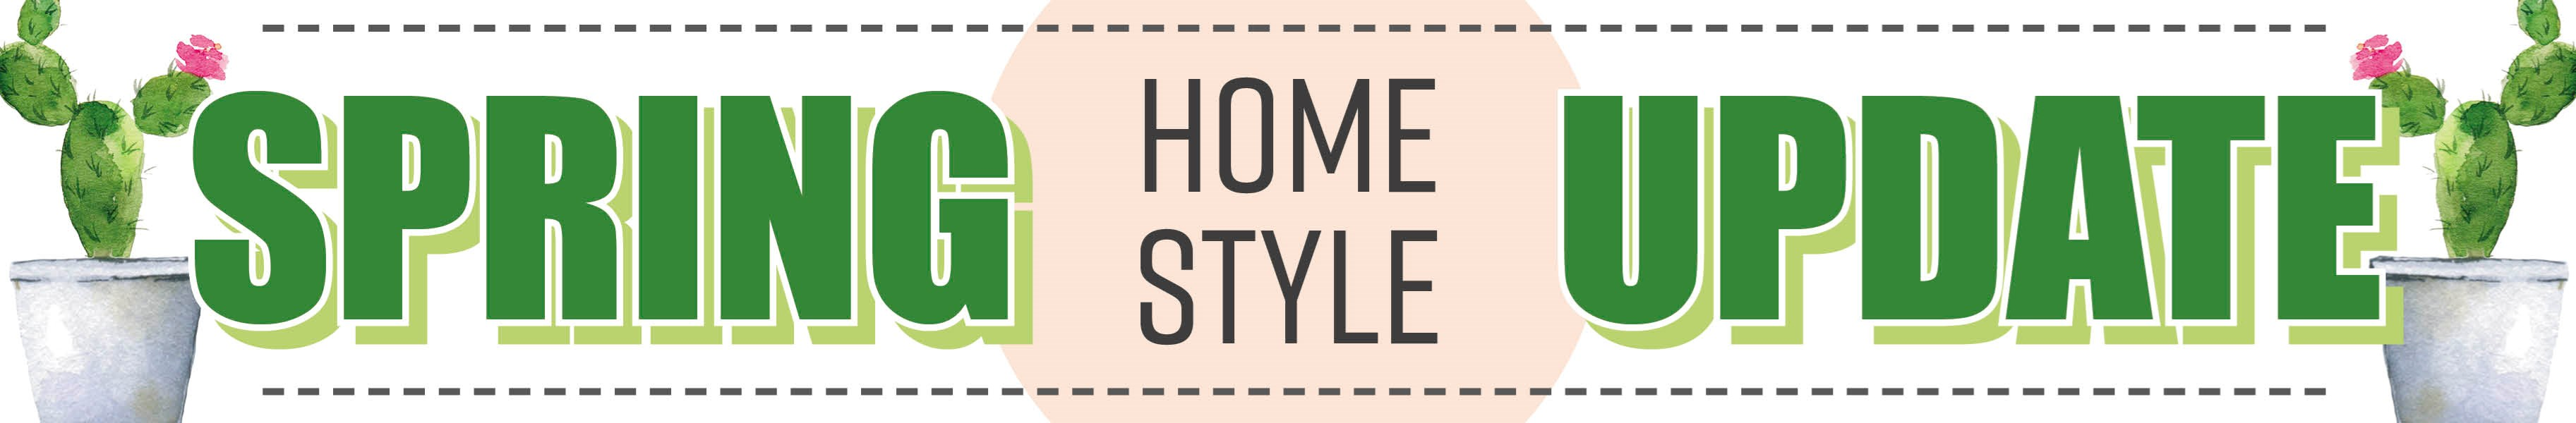 Spring Home Style Update